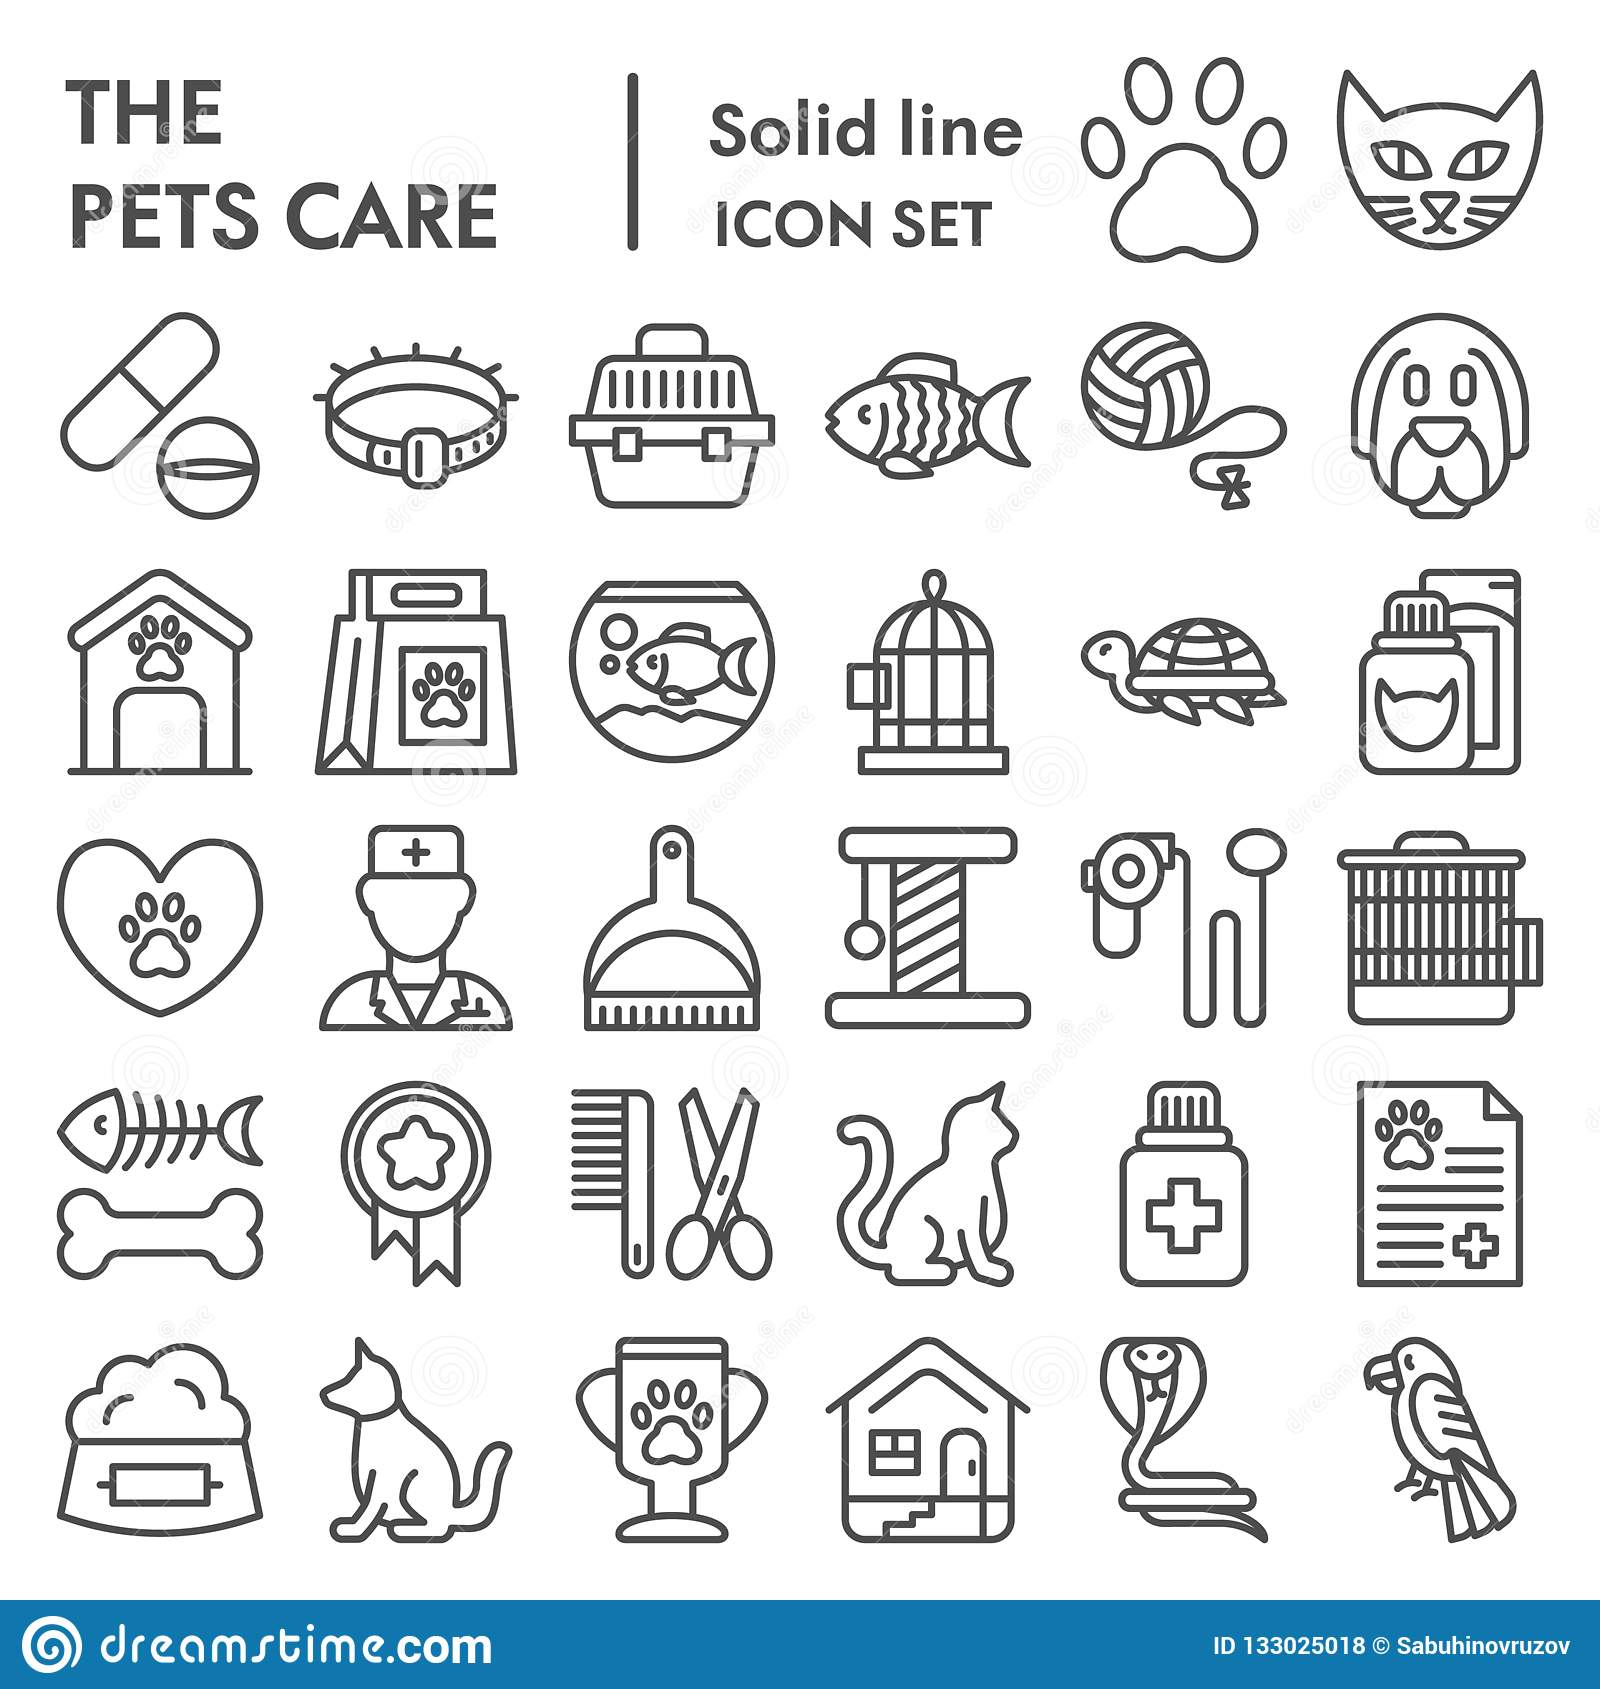 Pets care line icon set, vet symbols collection, vector sketches, logo illustrations, animal signs linear pictograms